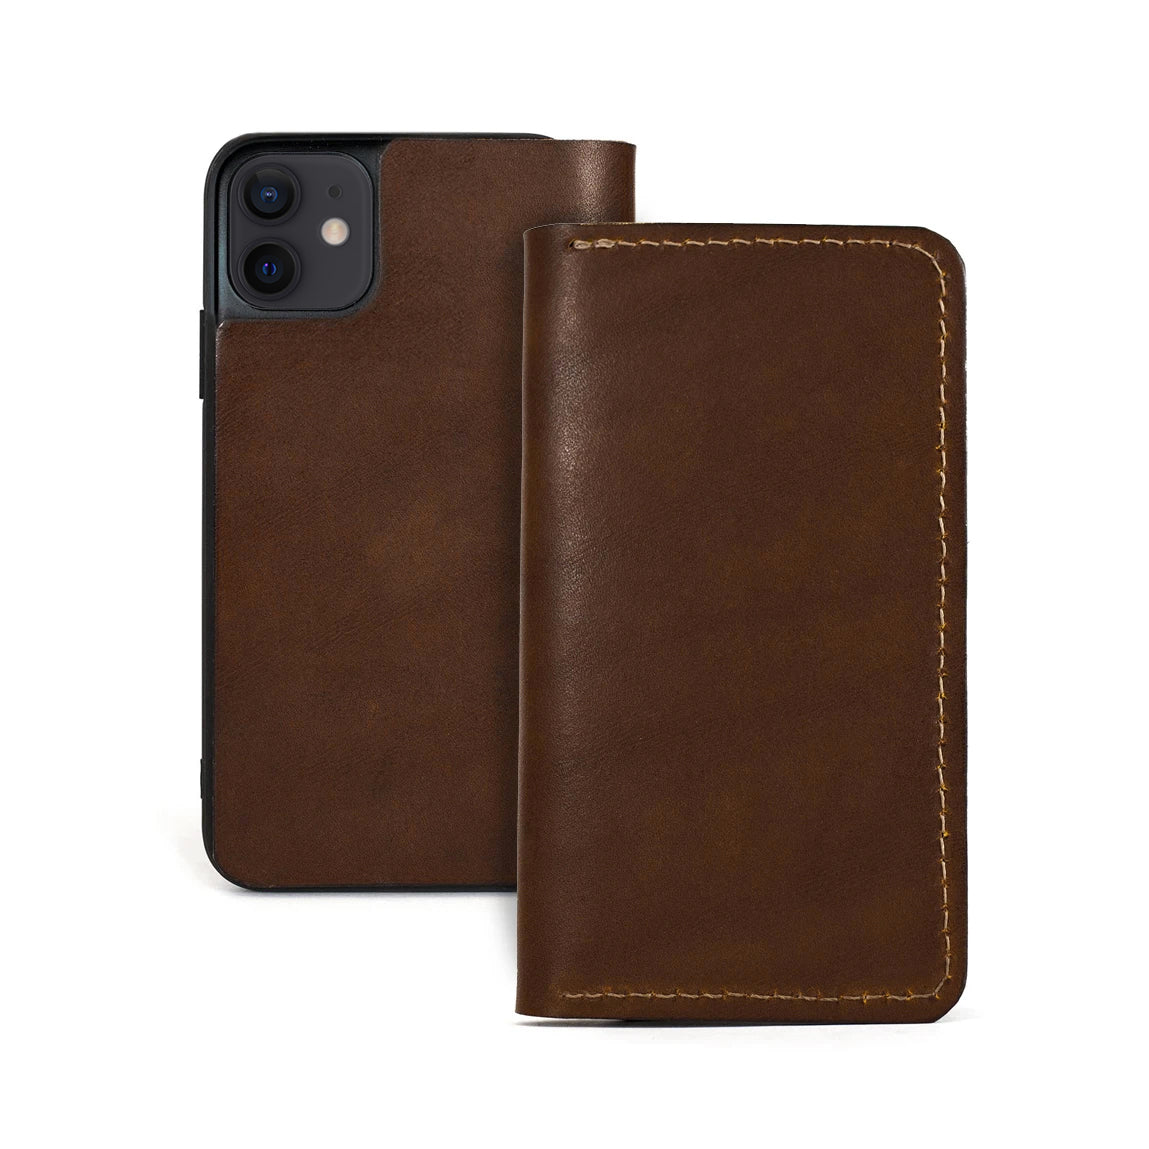 theGOODbook iPhone Wallet - Walnut